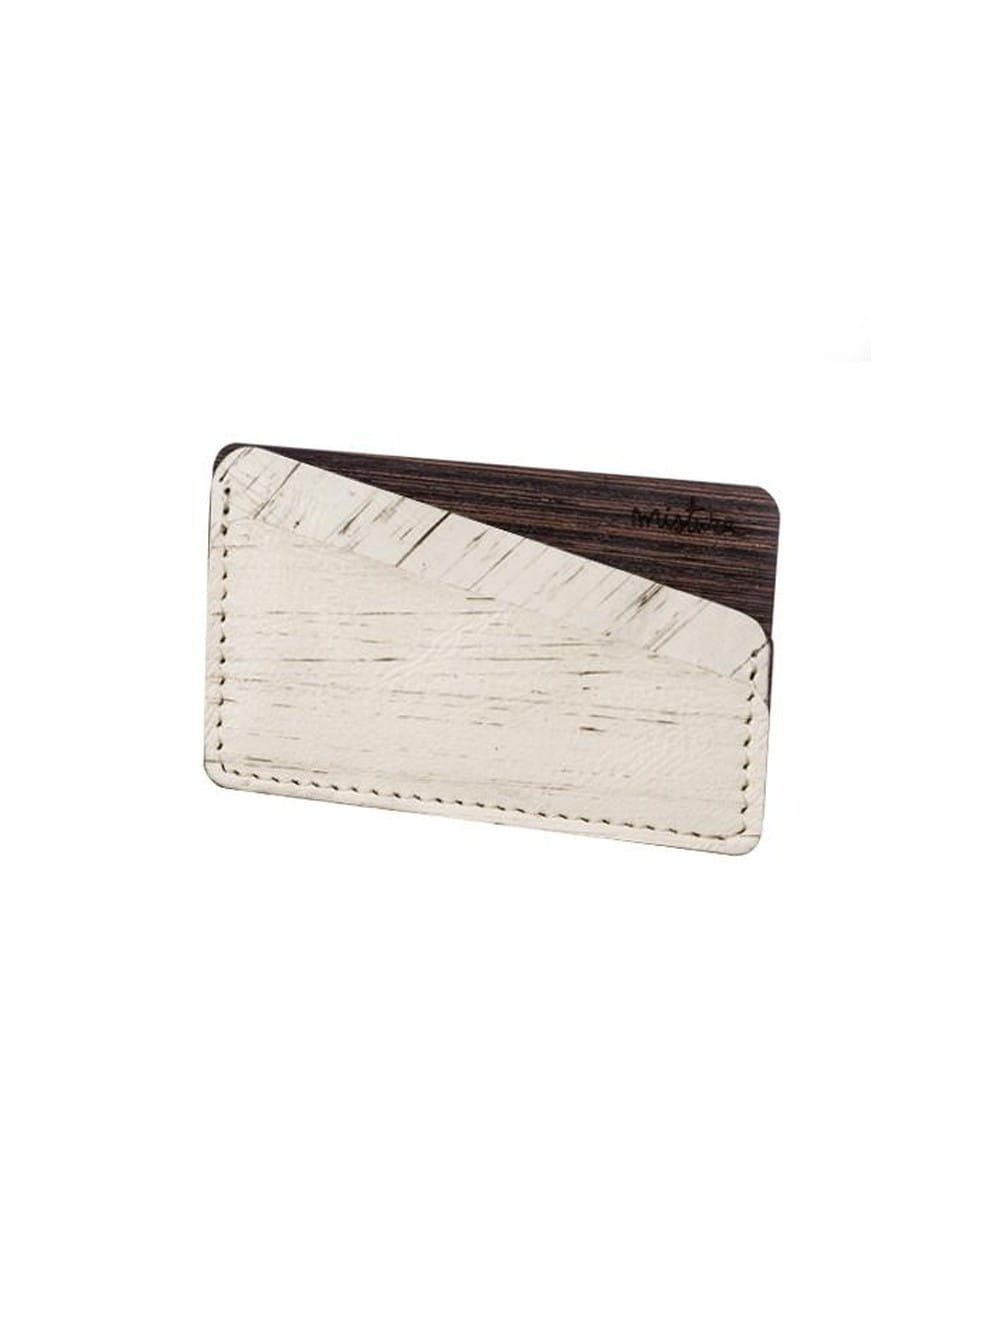 Handmade wallet made of leather and wood